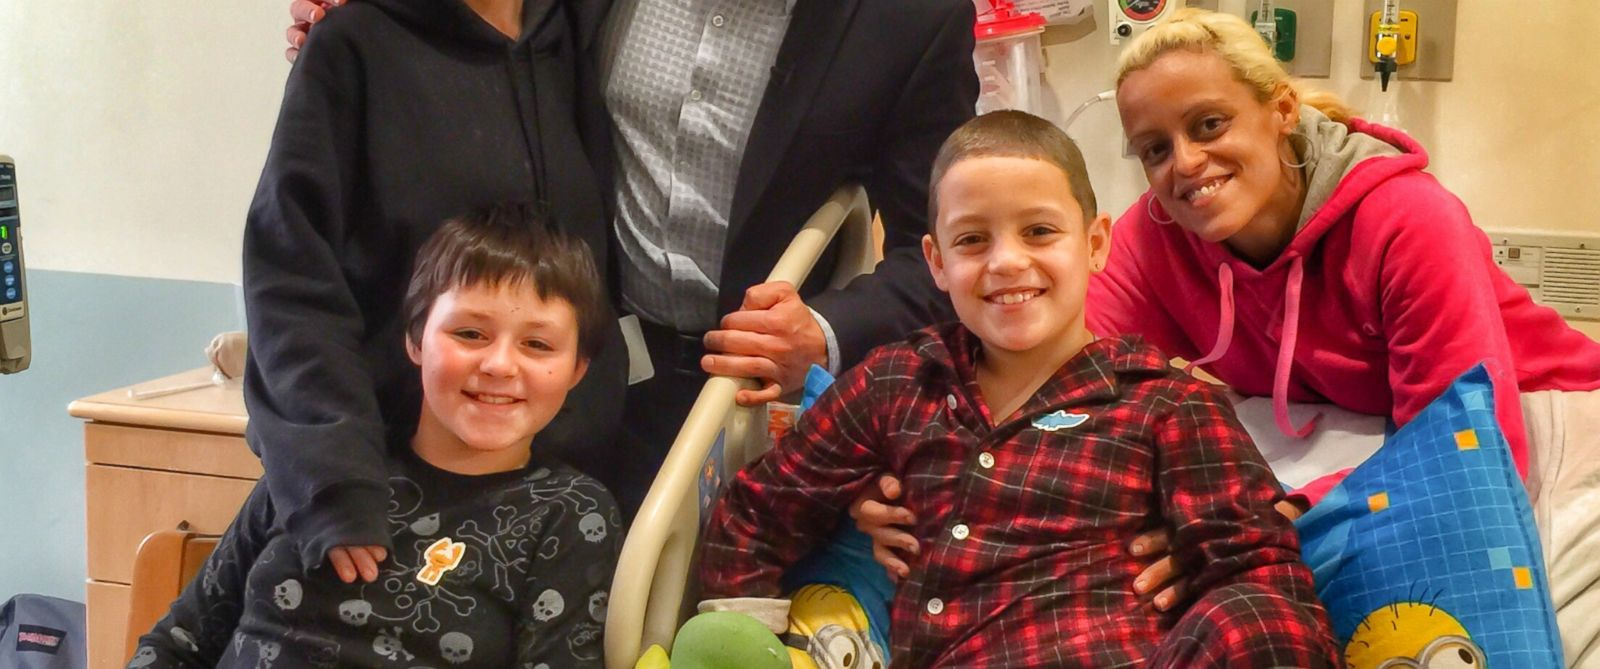 PHOTO: Cousins Jason Rivera, 9, and Elijah Martinez, 11, told ABC News they were feeling good today after being buried under 7 feet of snow.